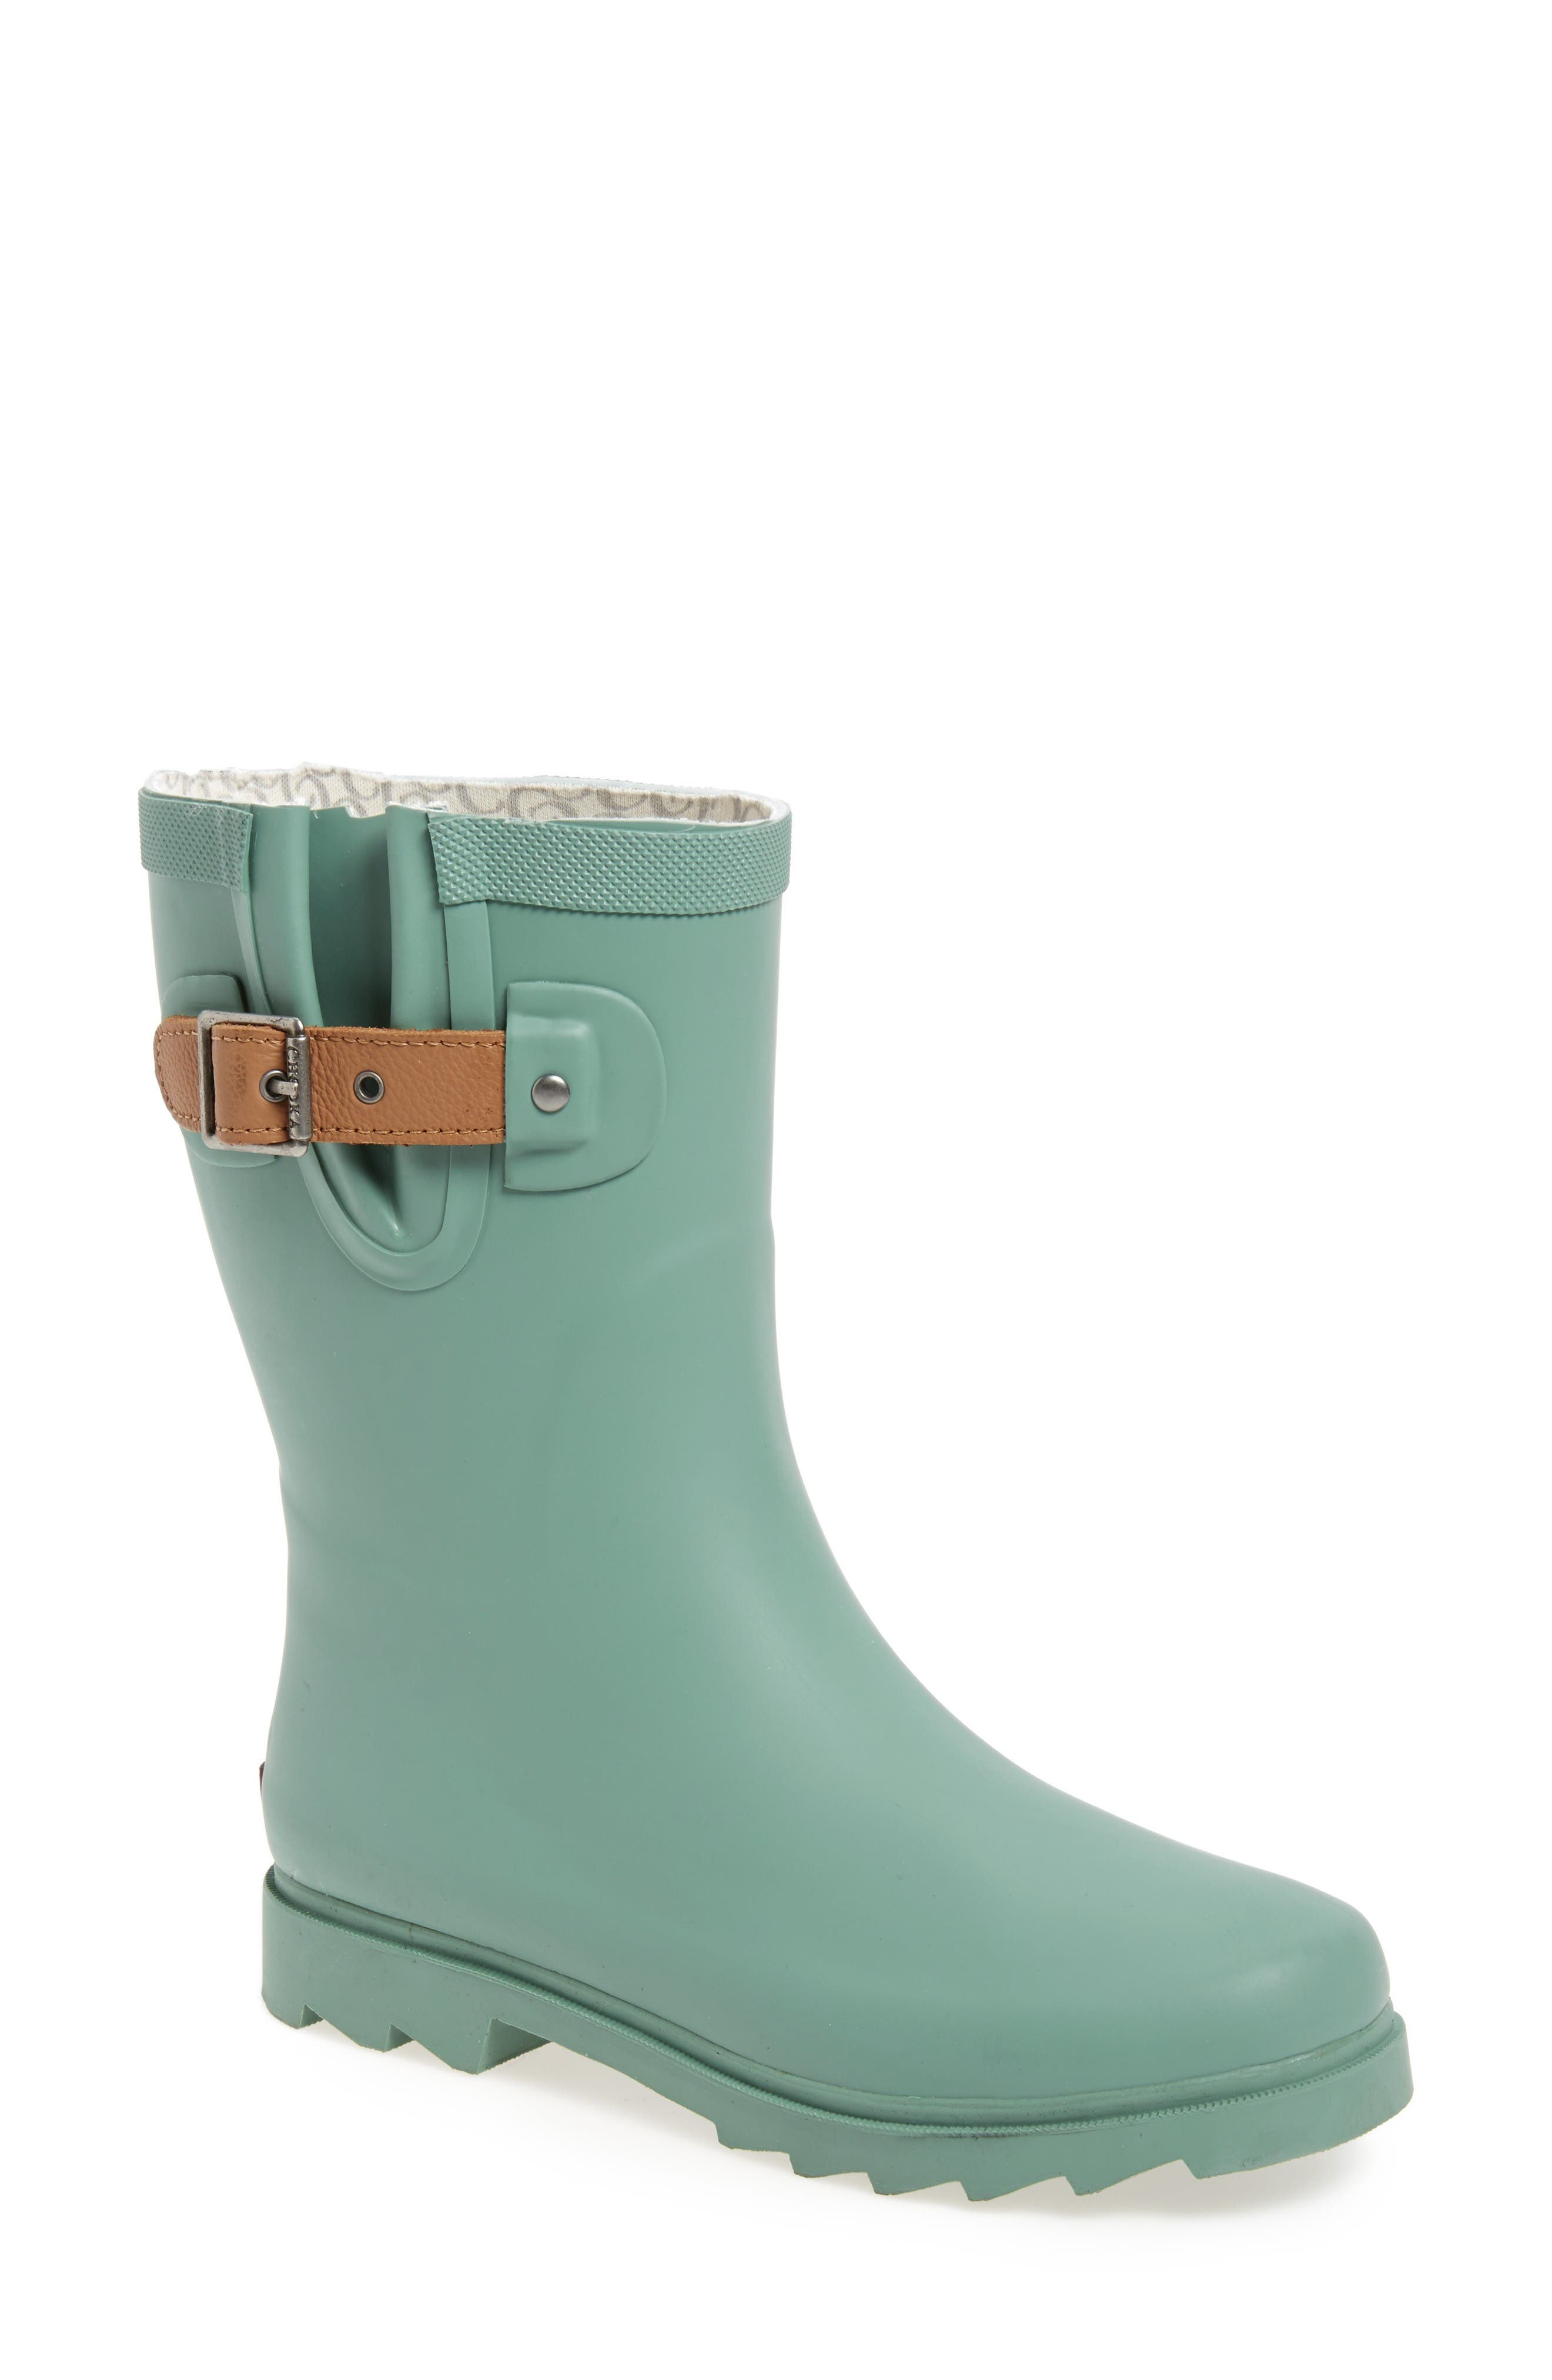 Alternate Image 1 Selected - Chooka 'Top Solid Mid Height' Rain Boot (Women)